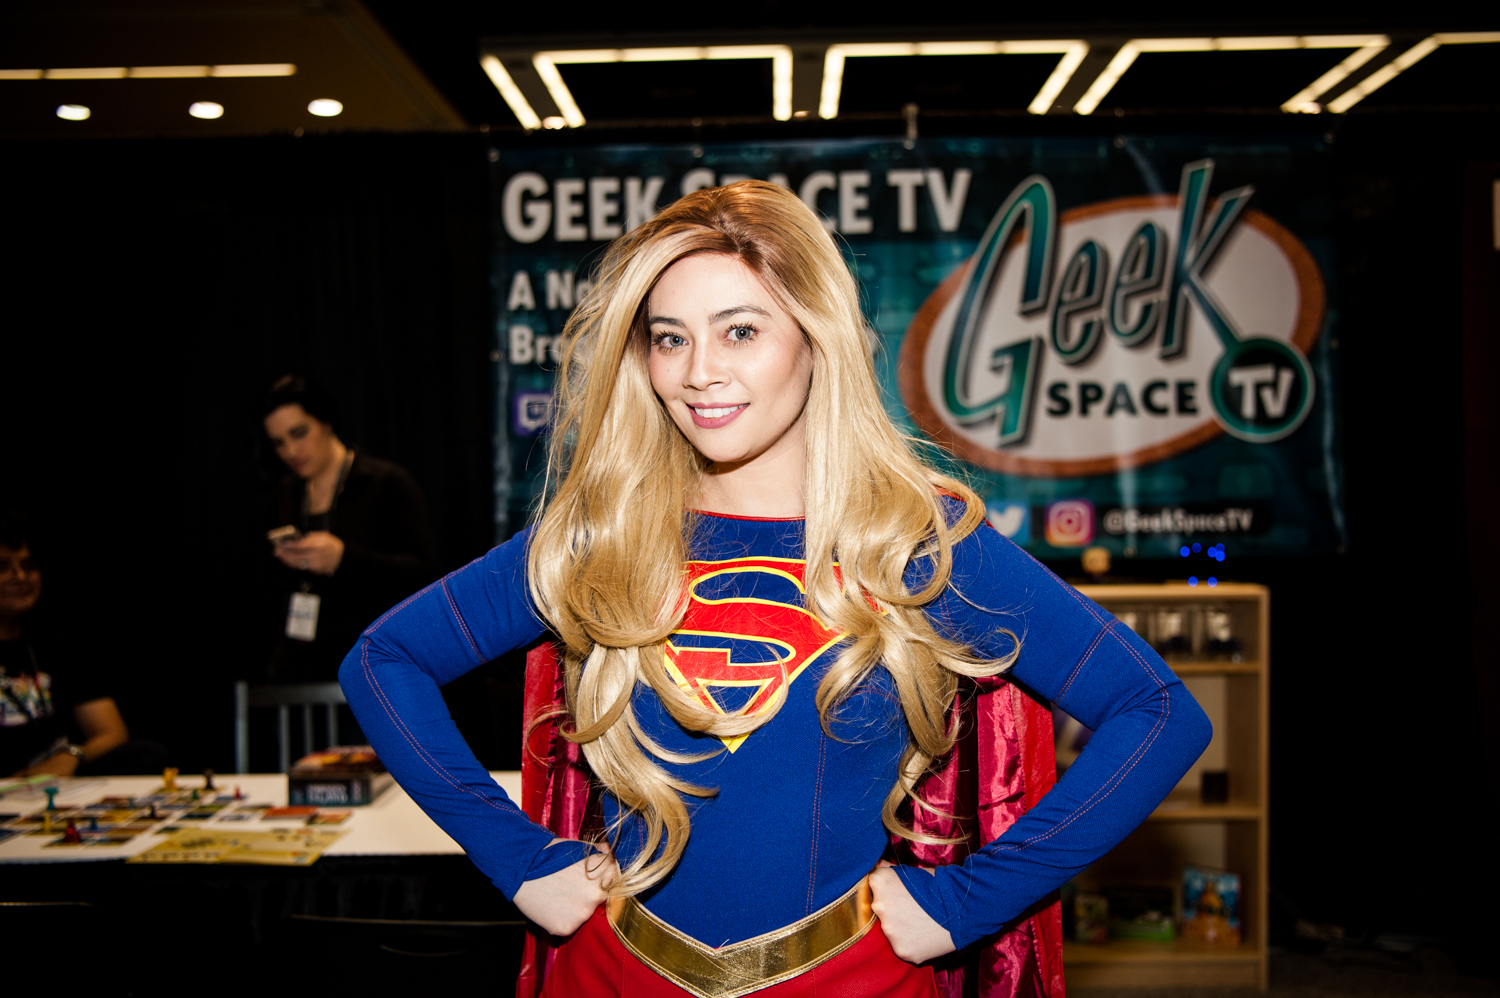 More than 12,000 people celebrated GeekGirlCon in downtown Seattle at the Conference Center this past weekend, an event dedicated to empowering women, girls, and non-binary geeks to pursue their passions — whether they love science and technology, comics, literature, gaming, or anything else. GGC believes everybody is a geek at heart, in one way or another, and we need to ensure all these geeks are supported, welcomed, and encouraged to pursue what they love. (Image: Elizabeth Crook)